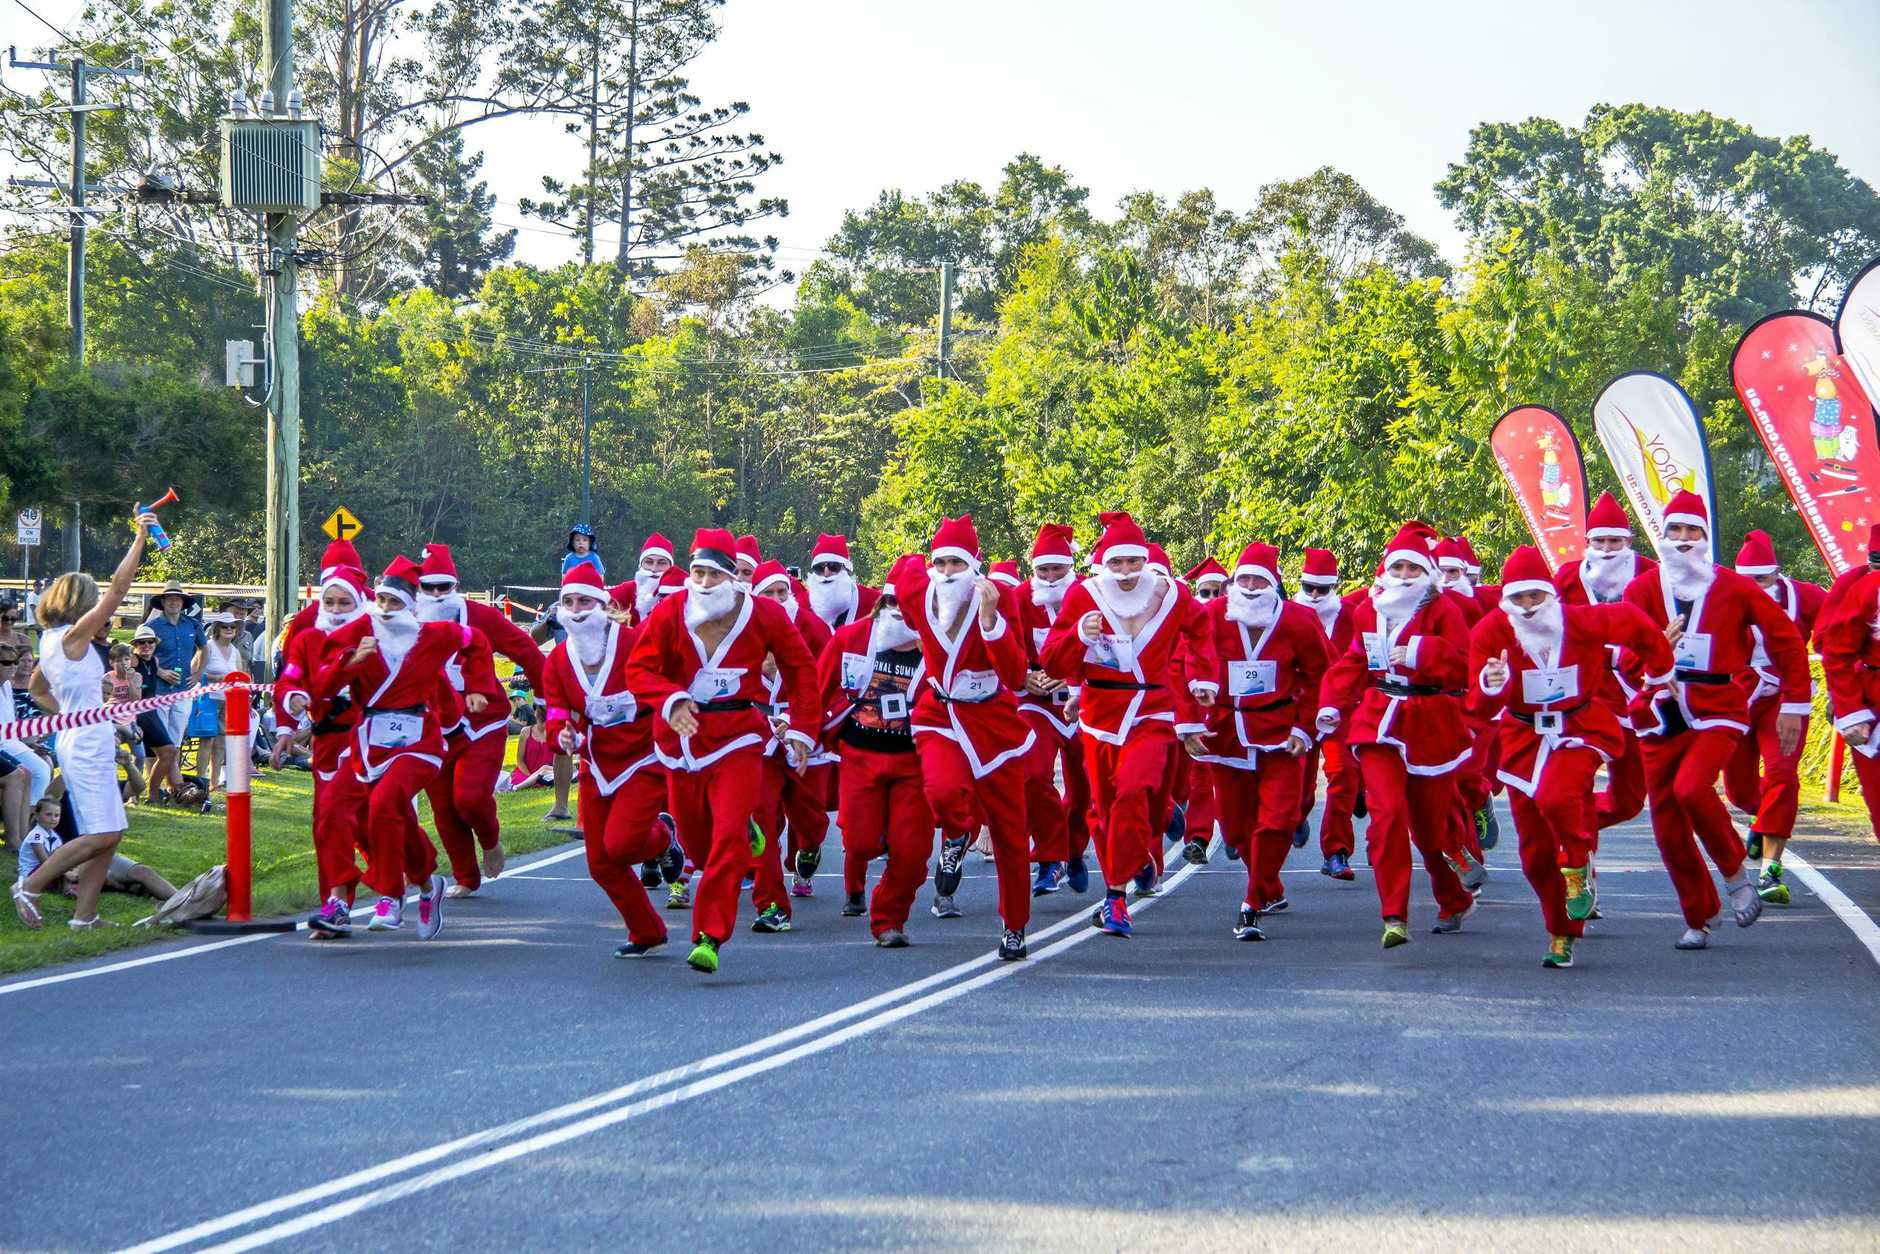 SPEED SANTAS: They're off and racing in the 2016 Santa race at Christmas in Cooroy.